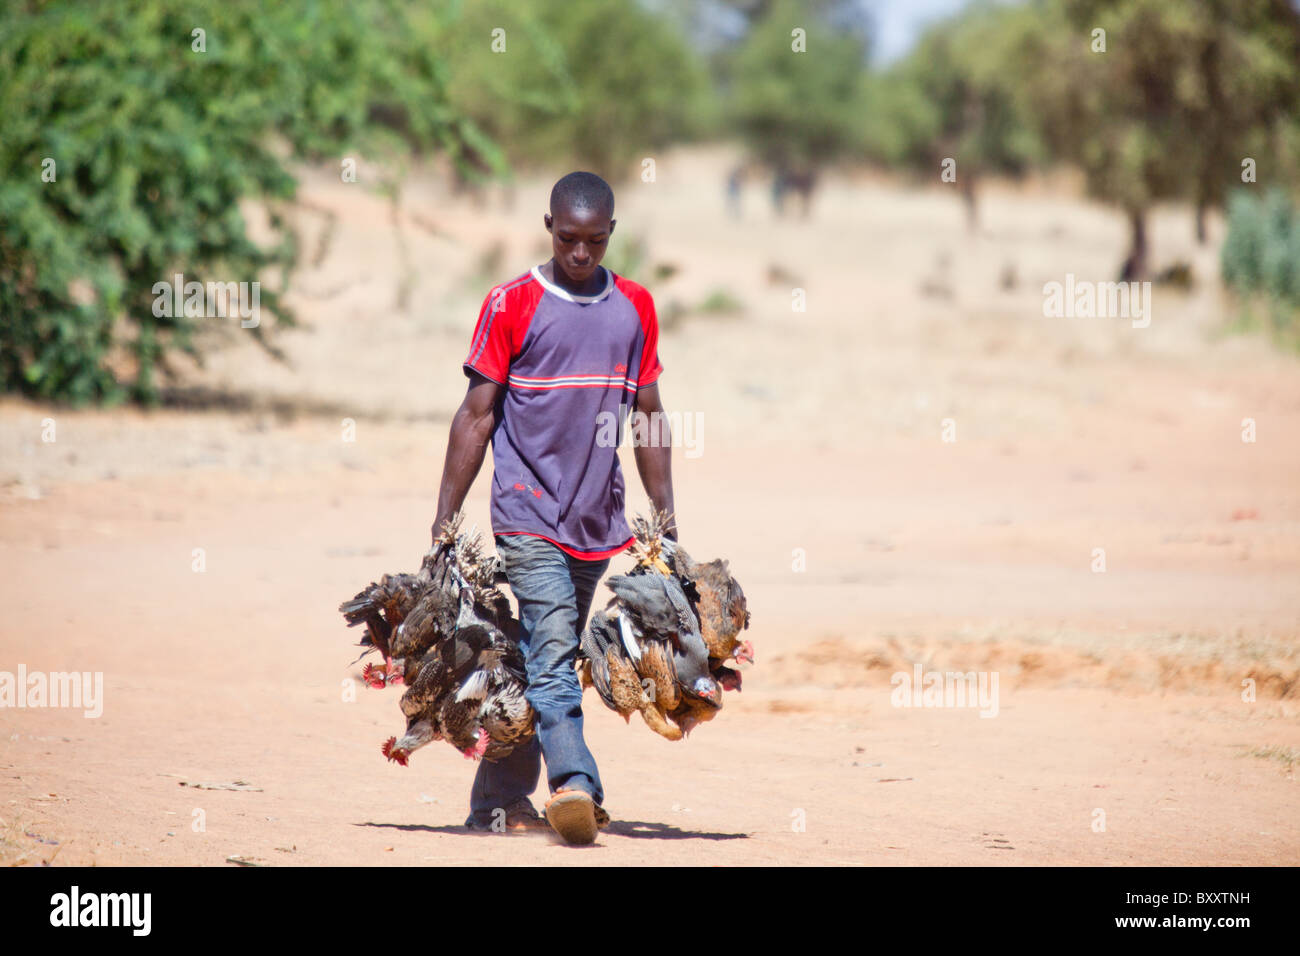 A man brings poultry to the village market of Bourro in northern Burkina Faso. Stock Photo